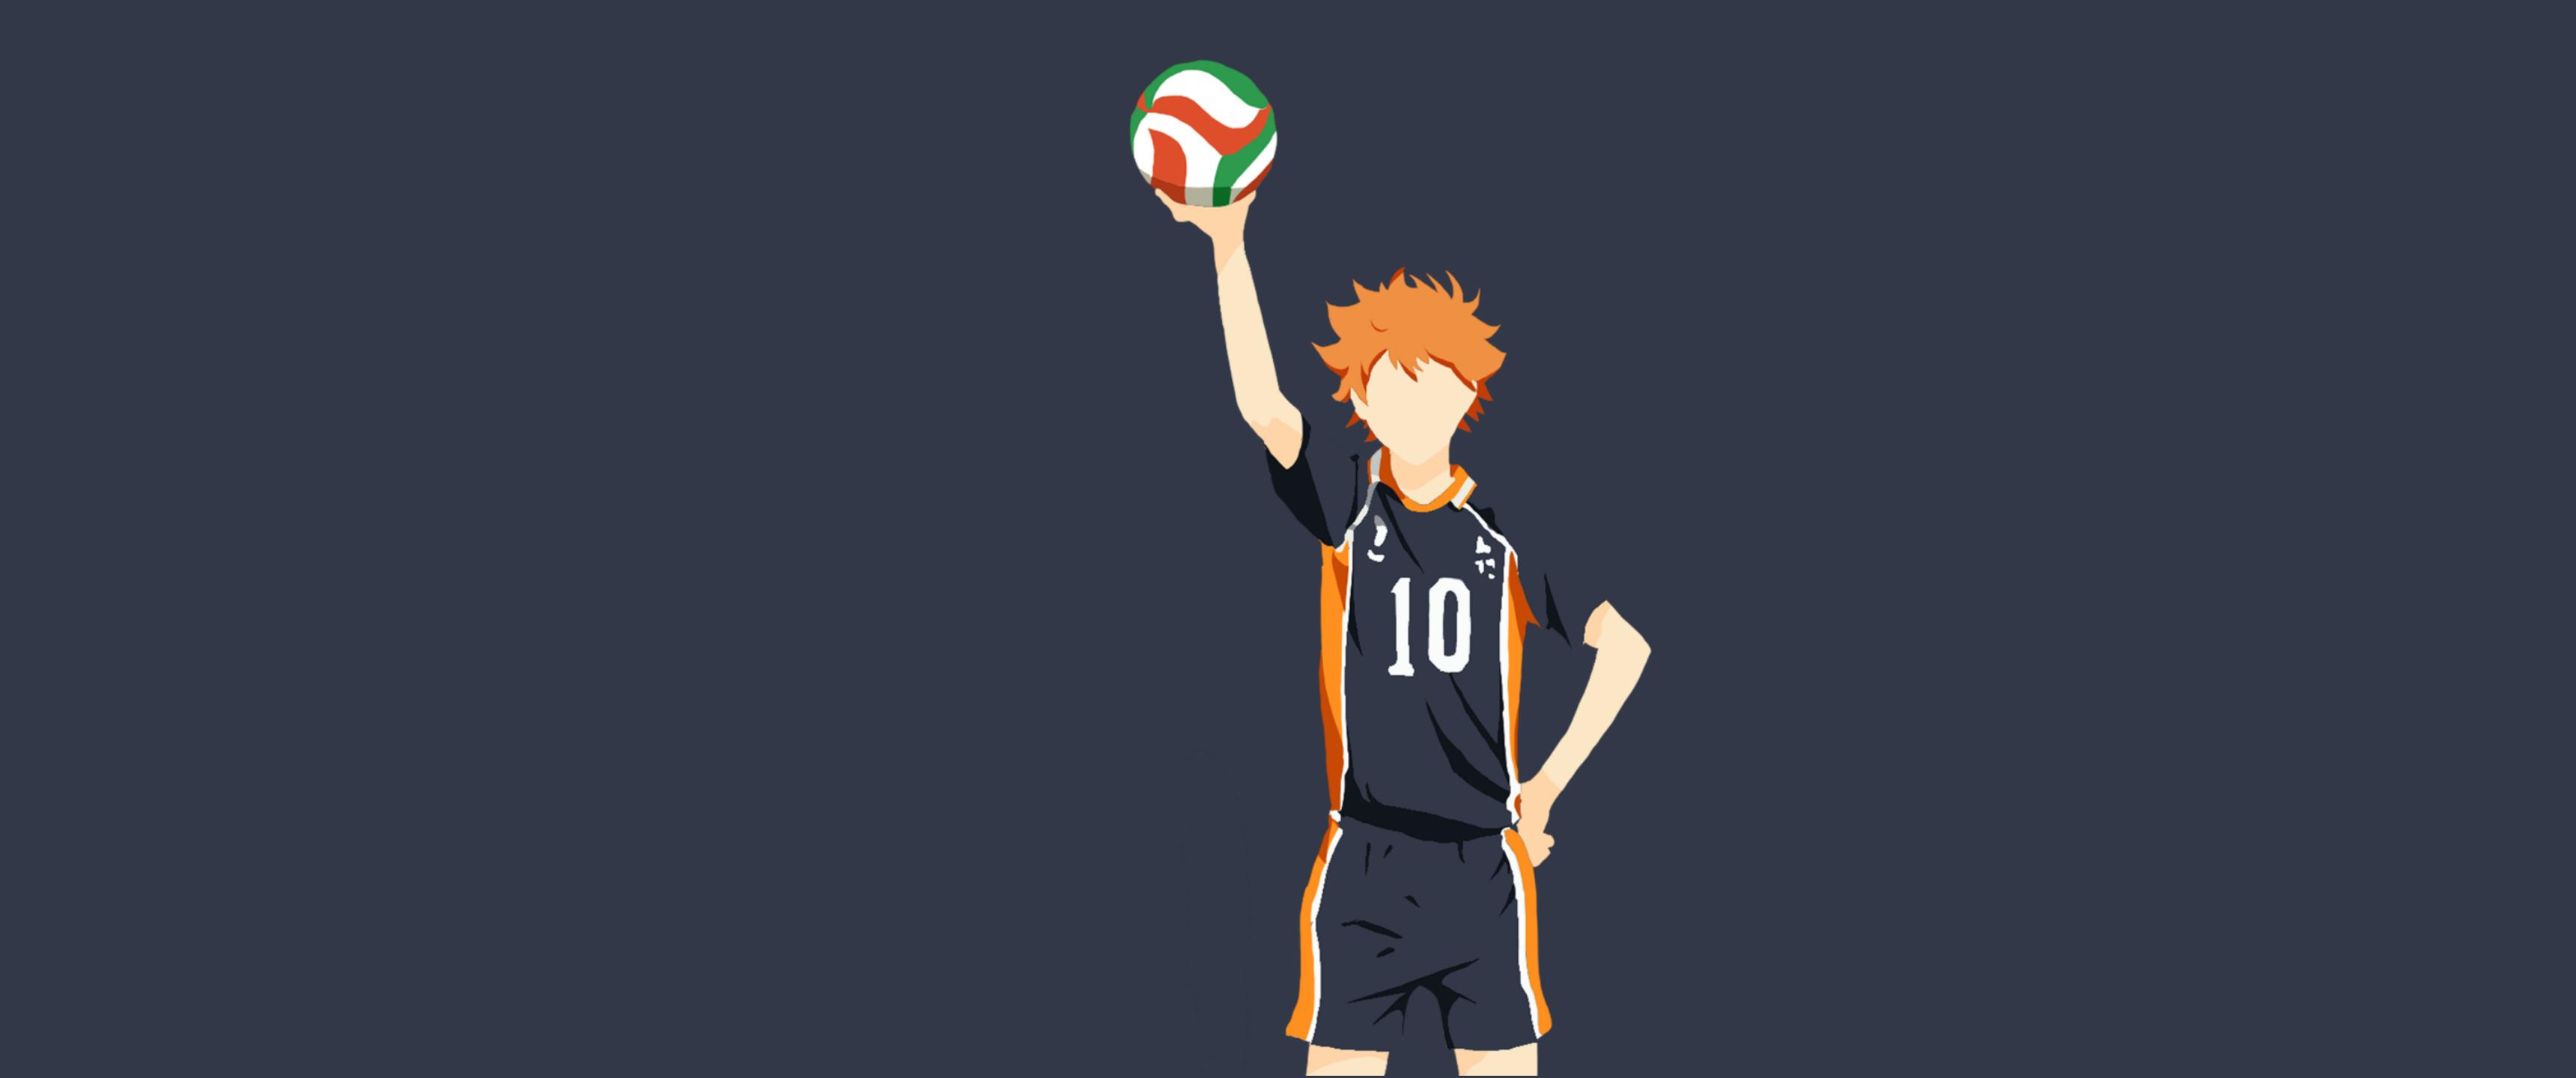 Haikyuu Minimalist Wallpapers - Wallpaper Cave